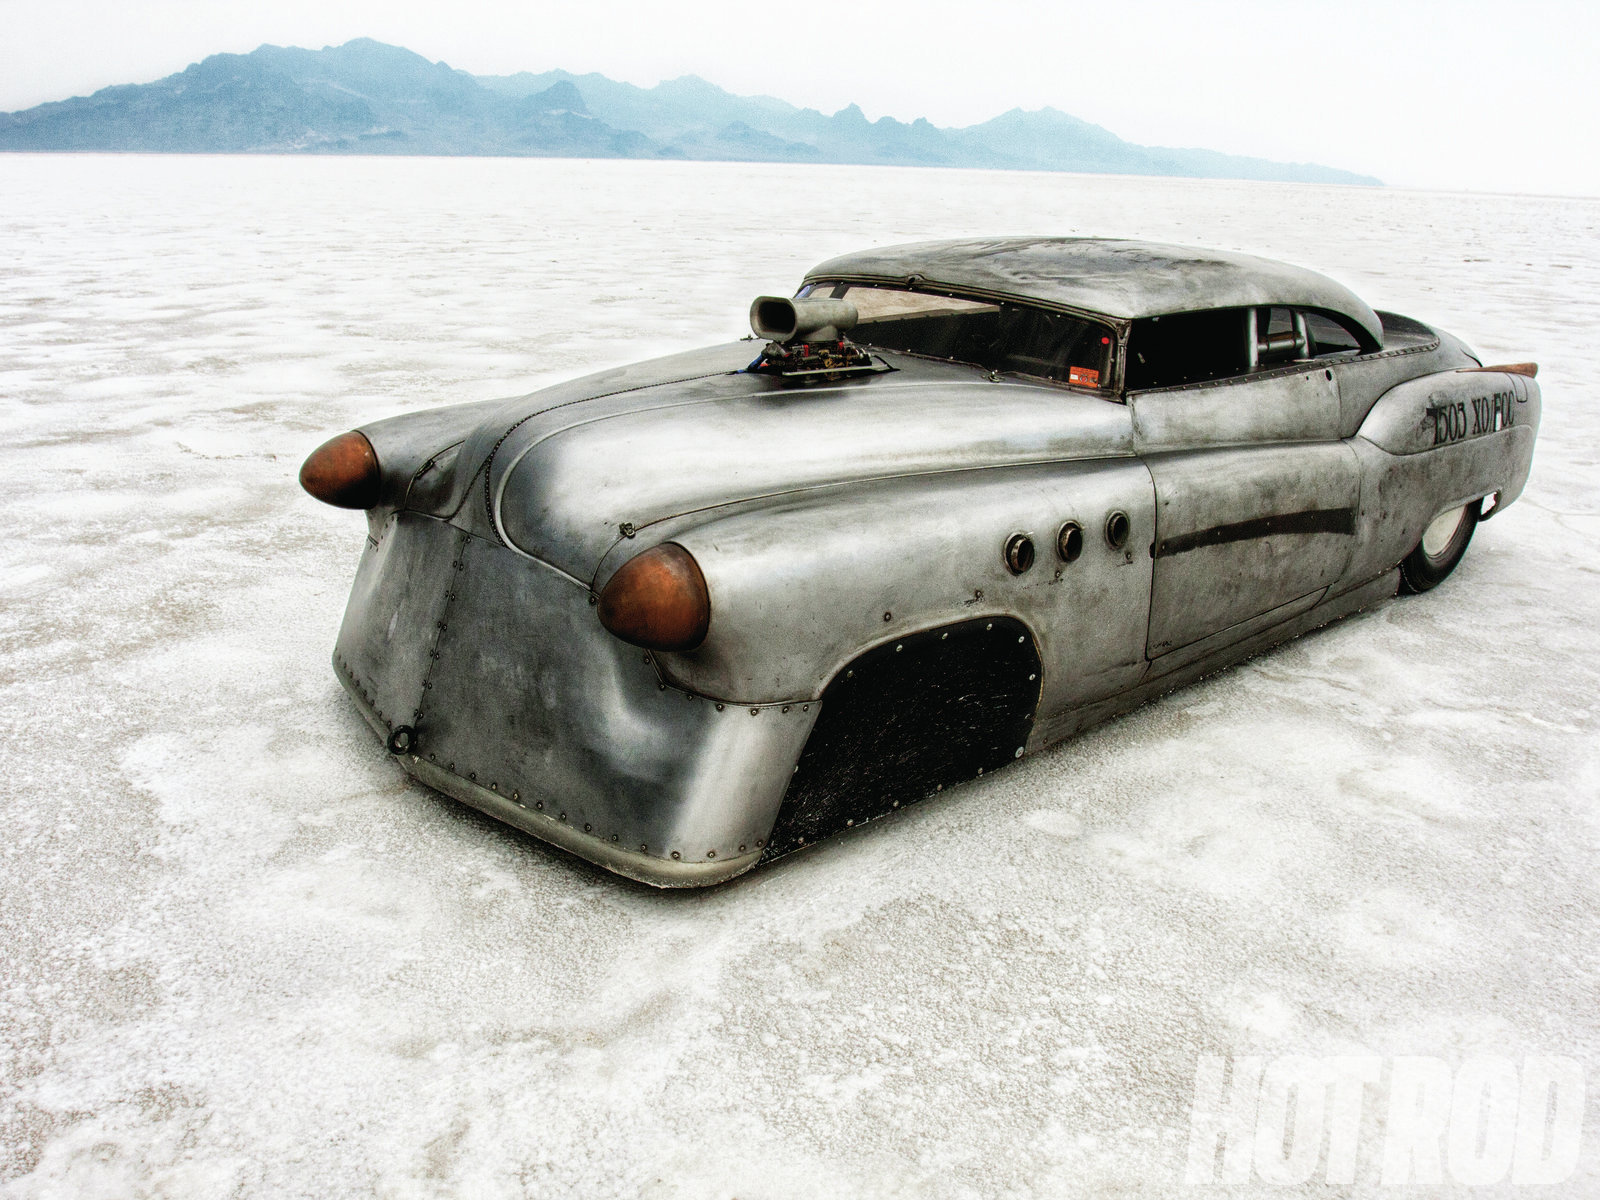 Jeff Brock came across this '52 Buick Super Rivera at an abandoned sawmill. With the assistance of his crew chief, Sergio Juarez, they have bumped the XO/GCC record by 35 mph since they first came to Bonneville in 2009. Follow them at RocketHeadsRacing.com. The chassis and suspension were influenced by Bonneville veterans Jim Kitchen and Rich Fox. The front suspension is a solidly mounted, dropped I-beam from a '68 Chevy van that was narrowed 13 inches. The five-link rear suspension allows only 1 inch of compression travel.